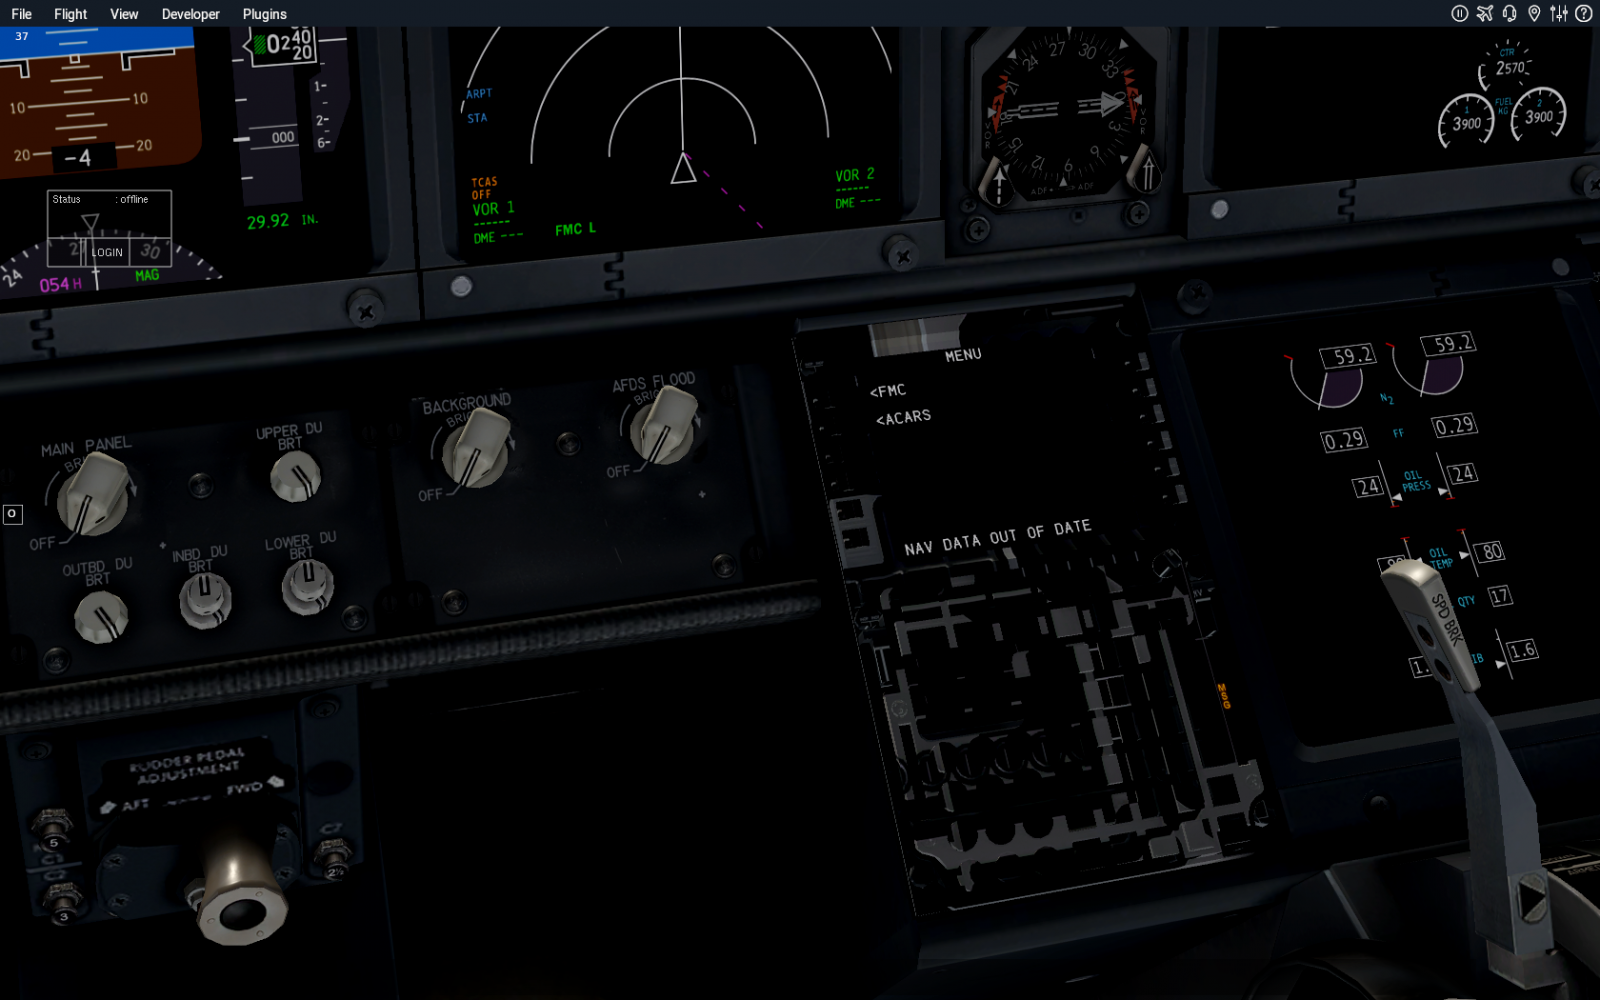 I installed the newest 737-800 but my FMC is broken - ZIBO B738-800